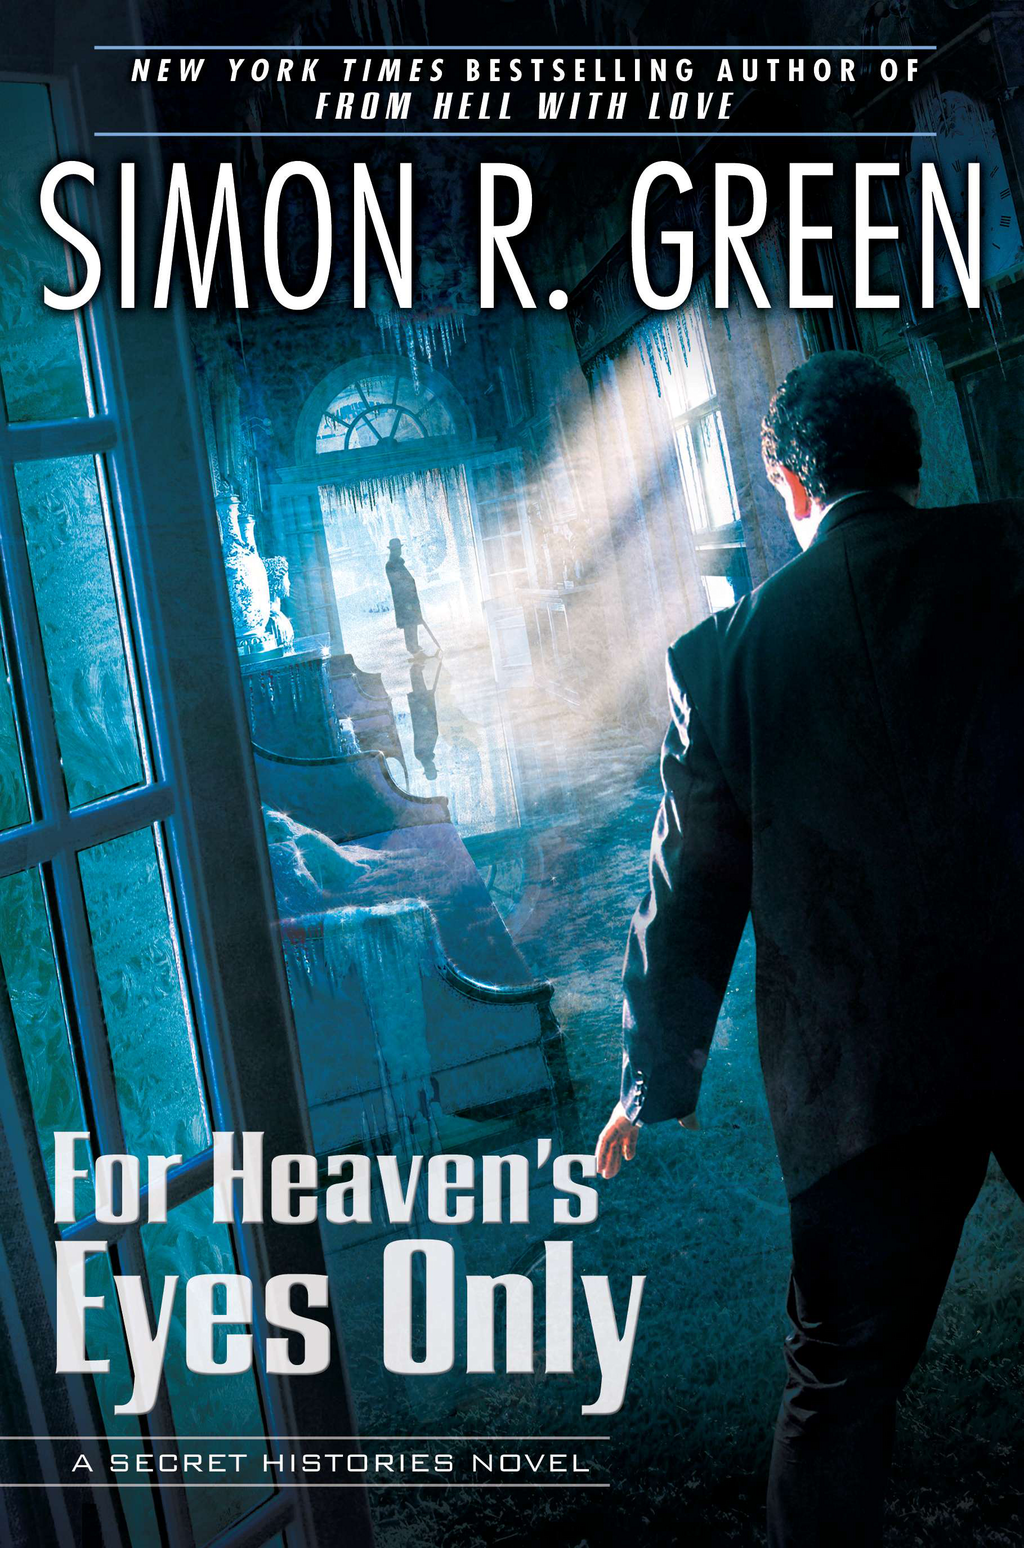 For Heaven's Eyes Only: A Secret Histories Novel By: Simon R. Green